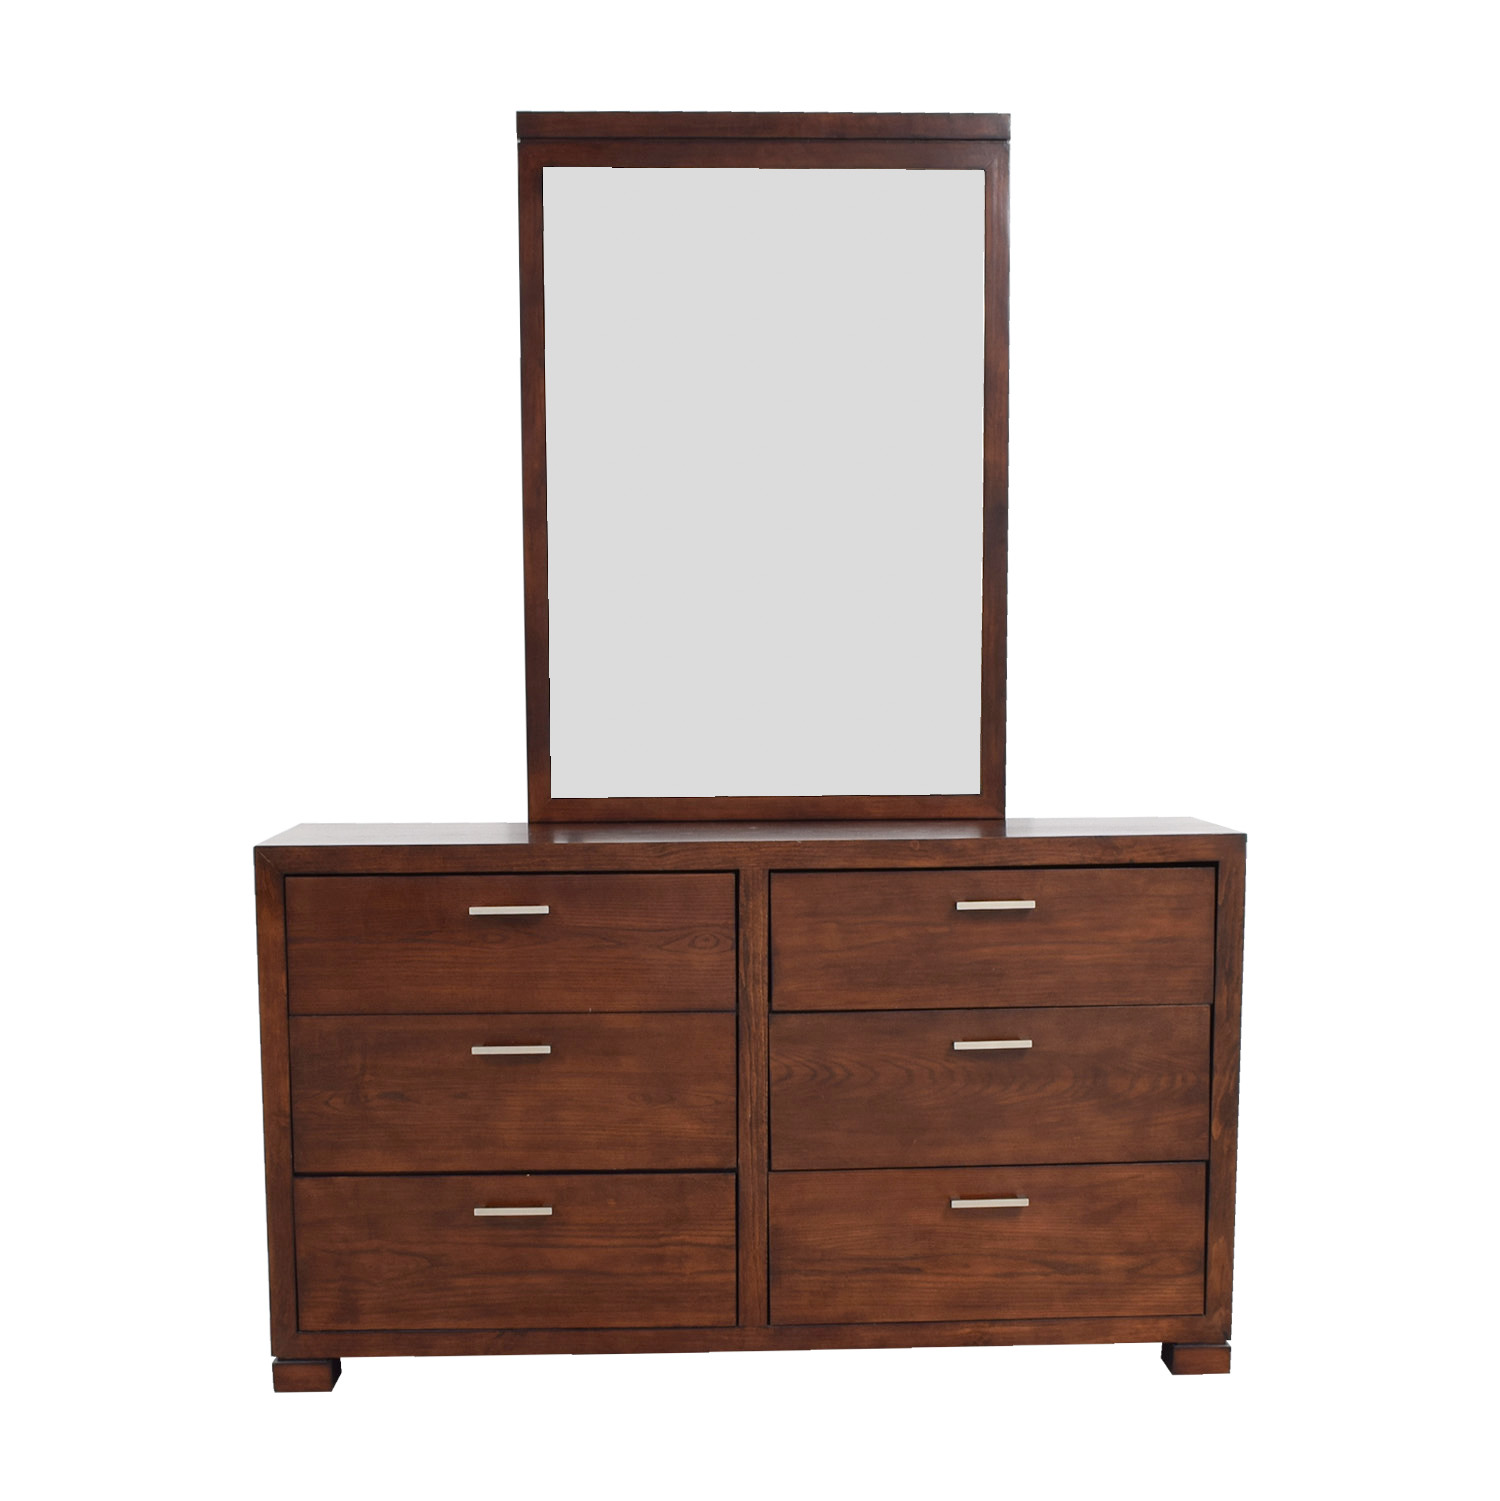 Macy's Macy's Six-Drawer Dresser with Mirror Sofas